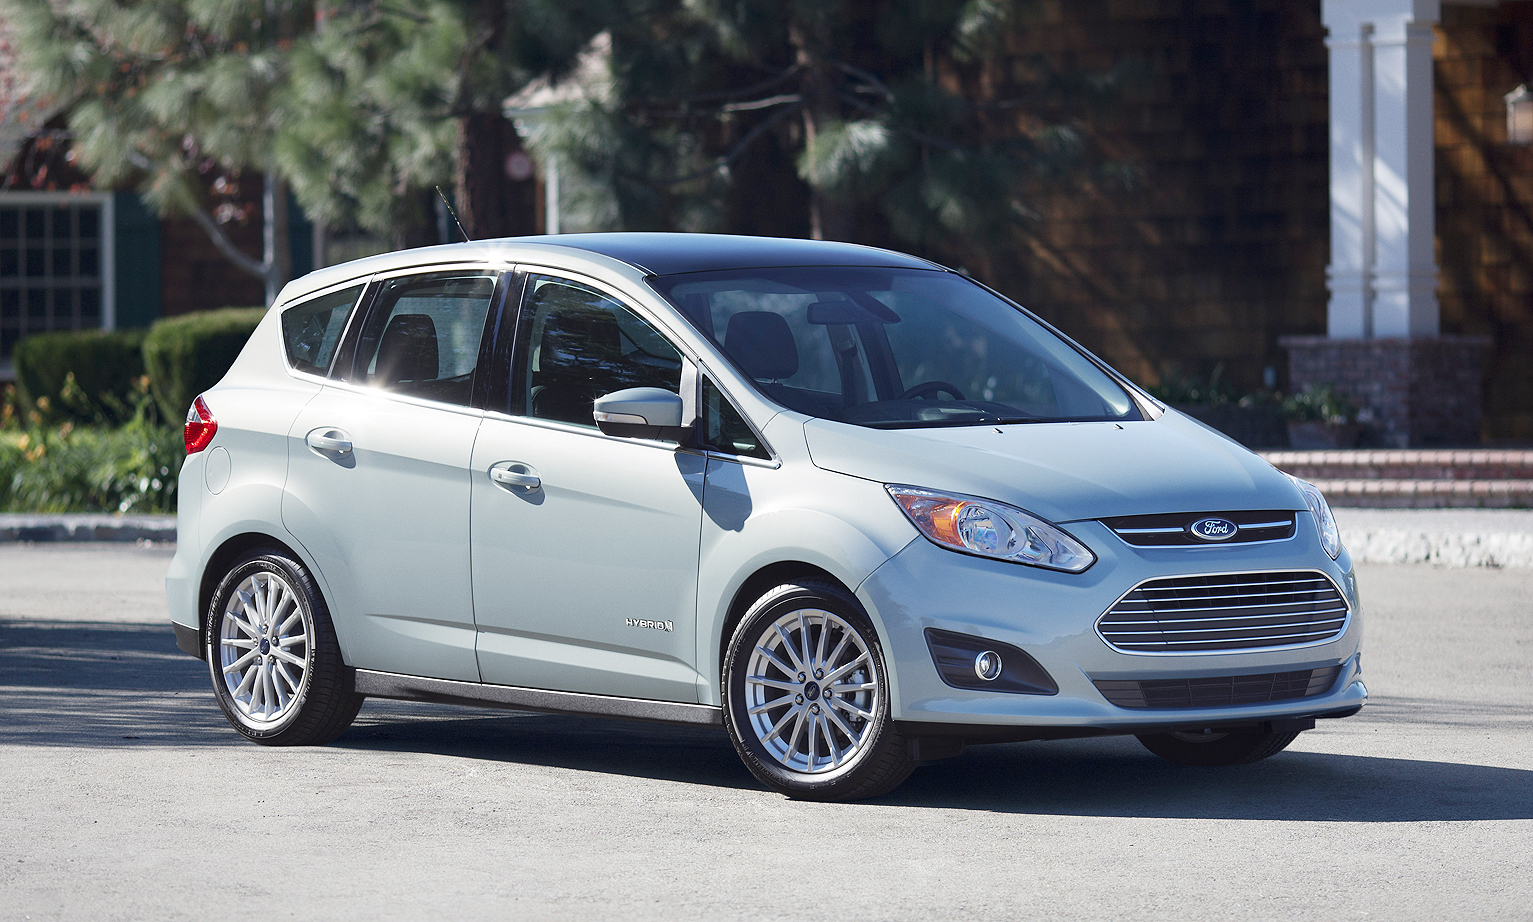 The C Max Hybrid S 37 Mpg Is Second Only To Prius V 41 In Its Cl Consumer Reports Says But Magazine Tests Show That Ers